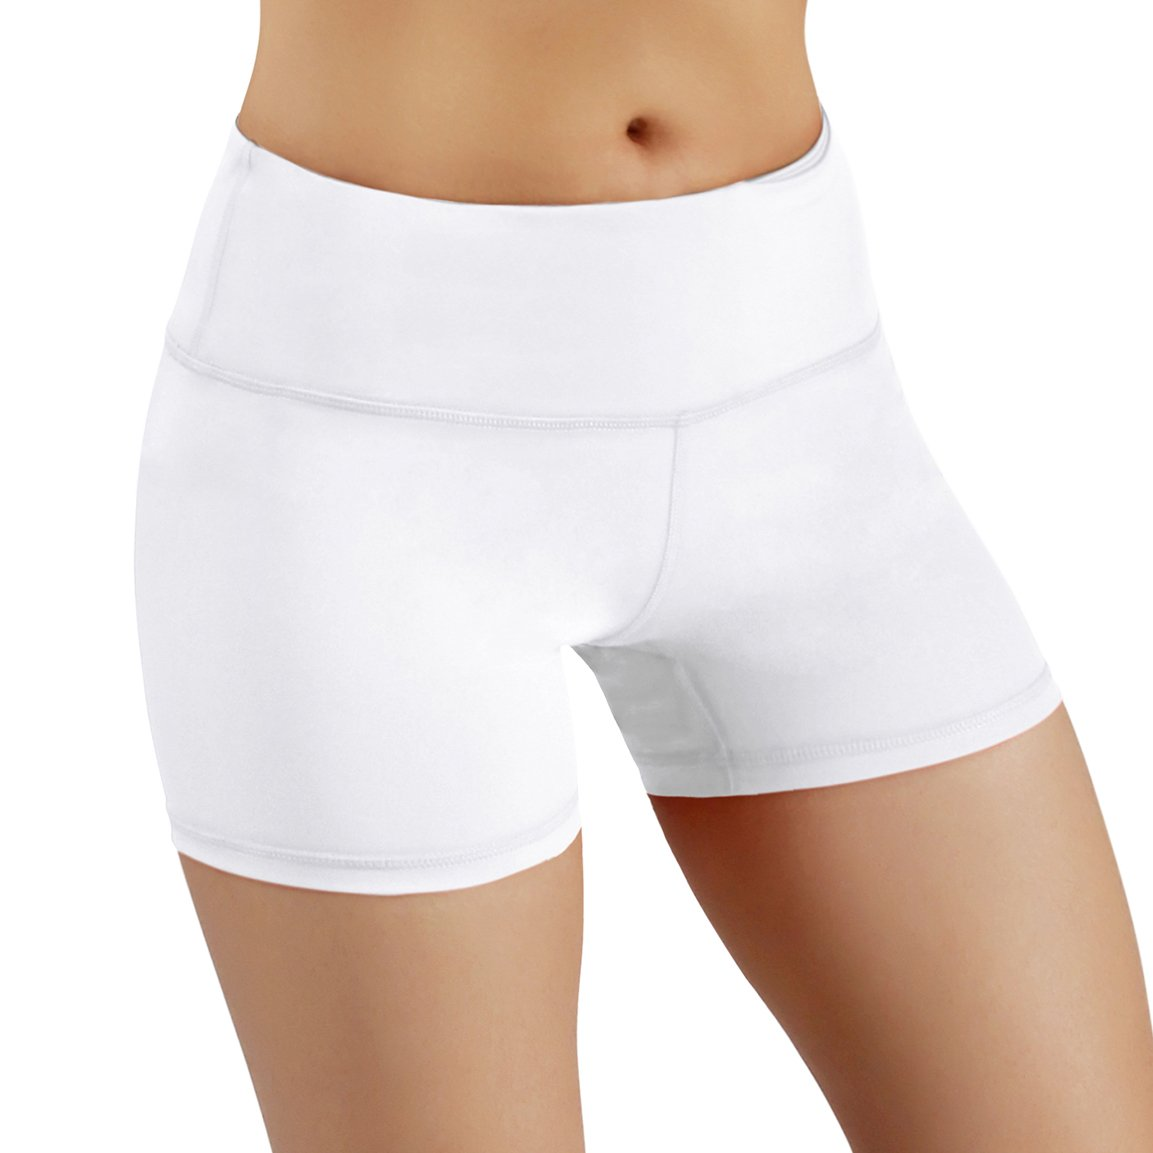 ODODOS Power Flex Yoga Shorts Women Tummy Control Workout Running Shorts Pants Yoga Shorts Hidden Pocket, White, Medium